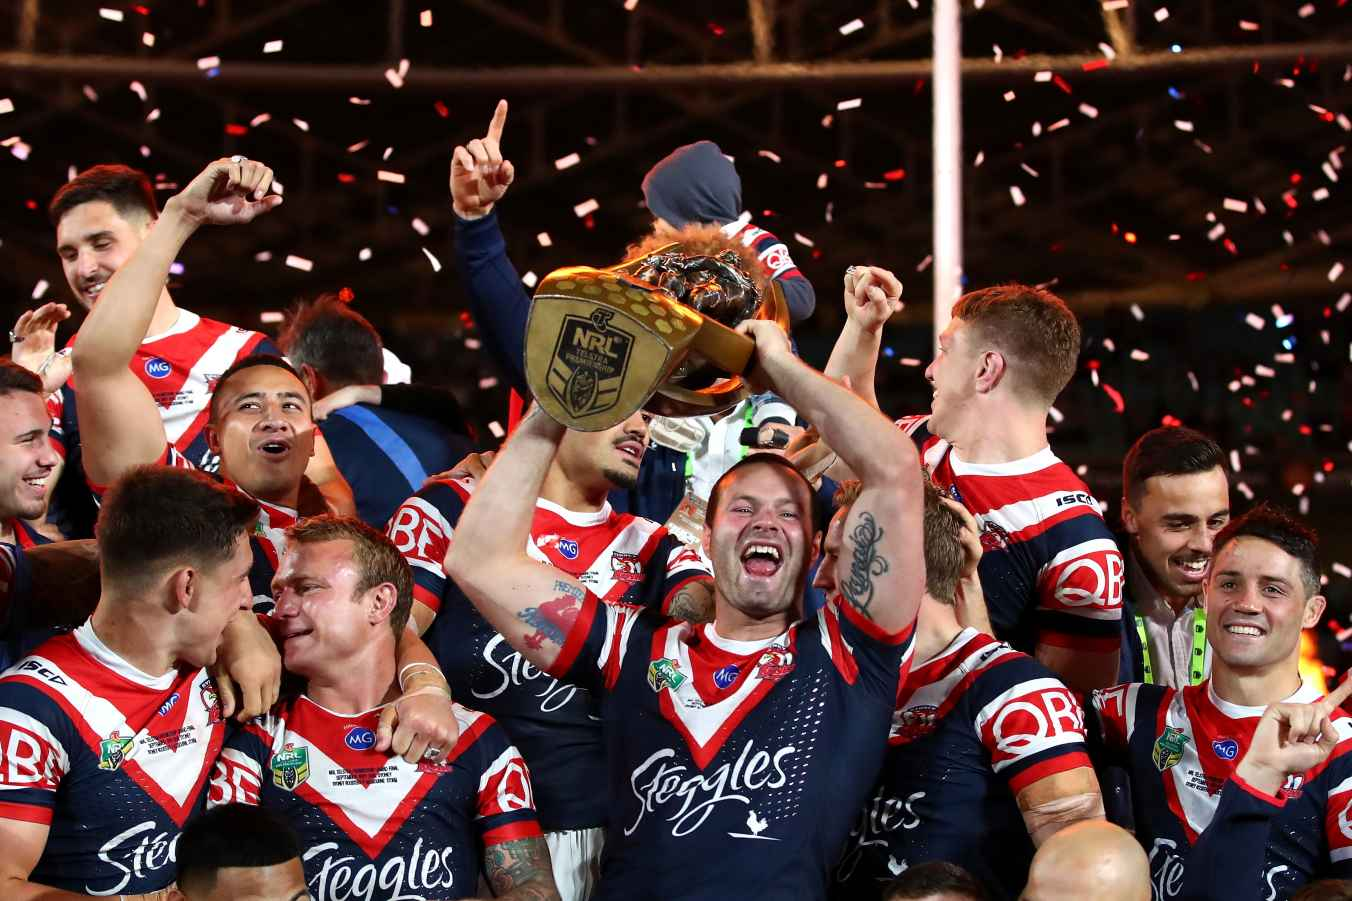 Sydney Roosters crowned 2018 NRL champions